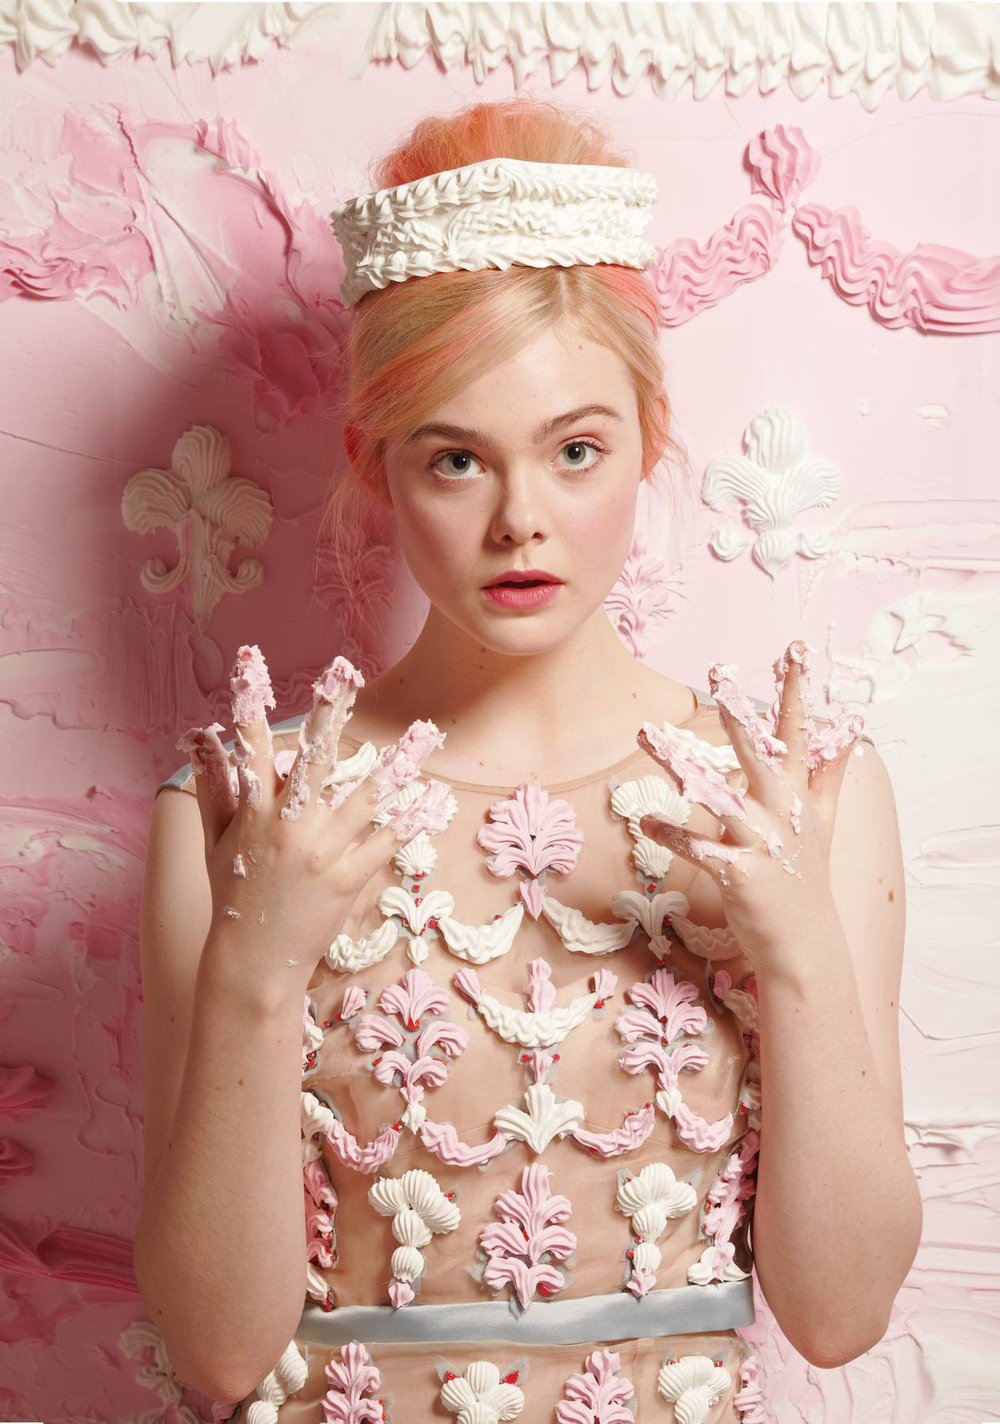 Elle Fanning by Will Cotton for 'New York Magazine'